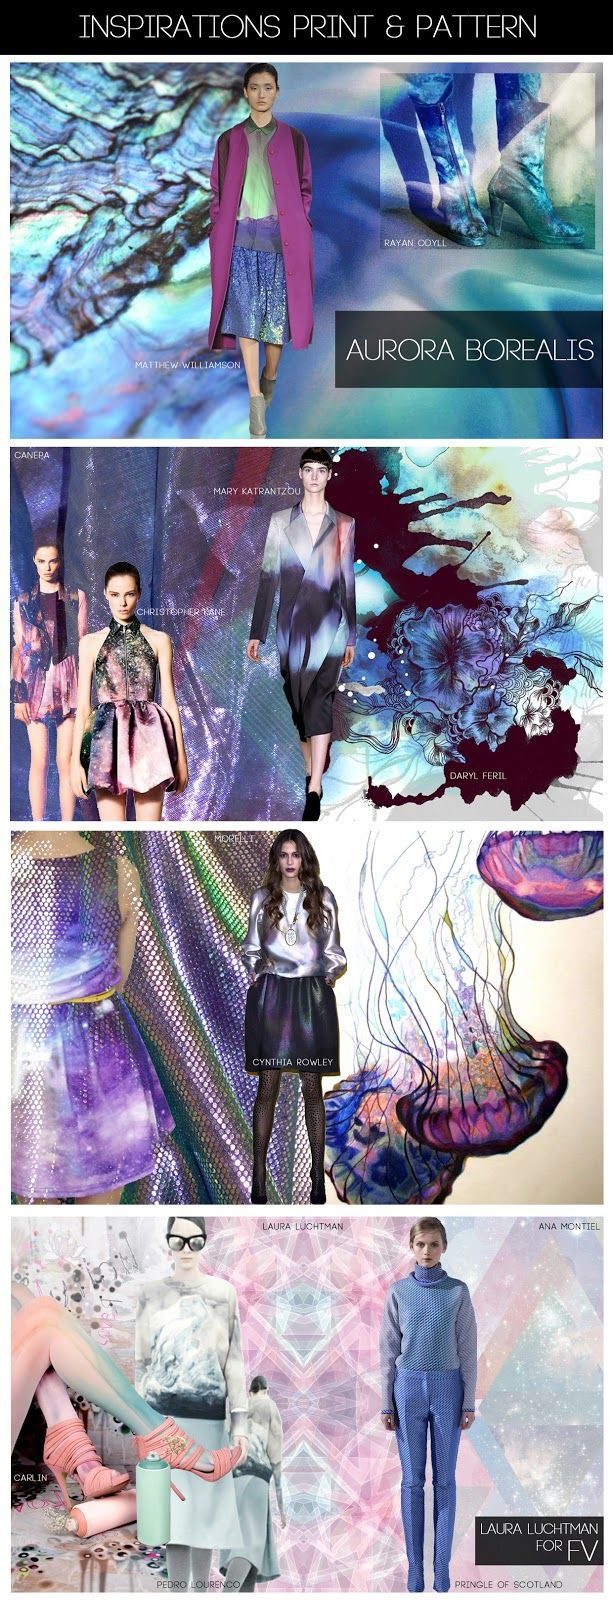 FASHION VIGNETTE: [ INSPIRATIONS PRINT + PATTERN ] KUKKA by Laura Luchtman - AURORA BOREALIS